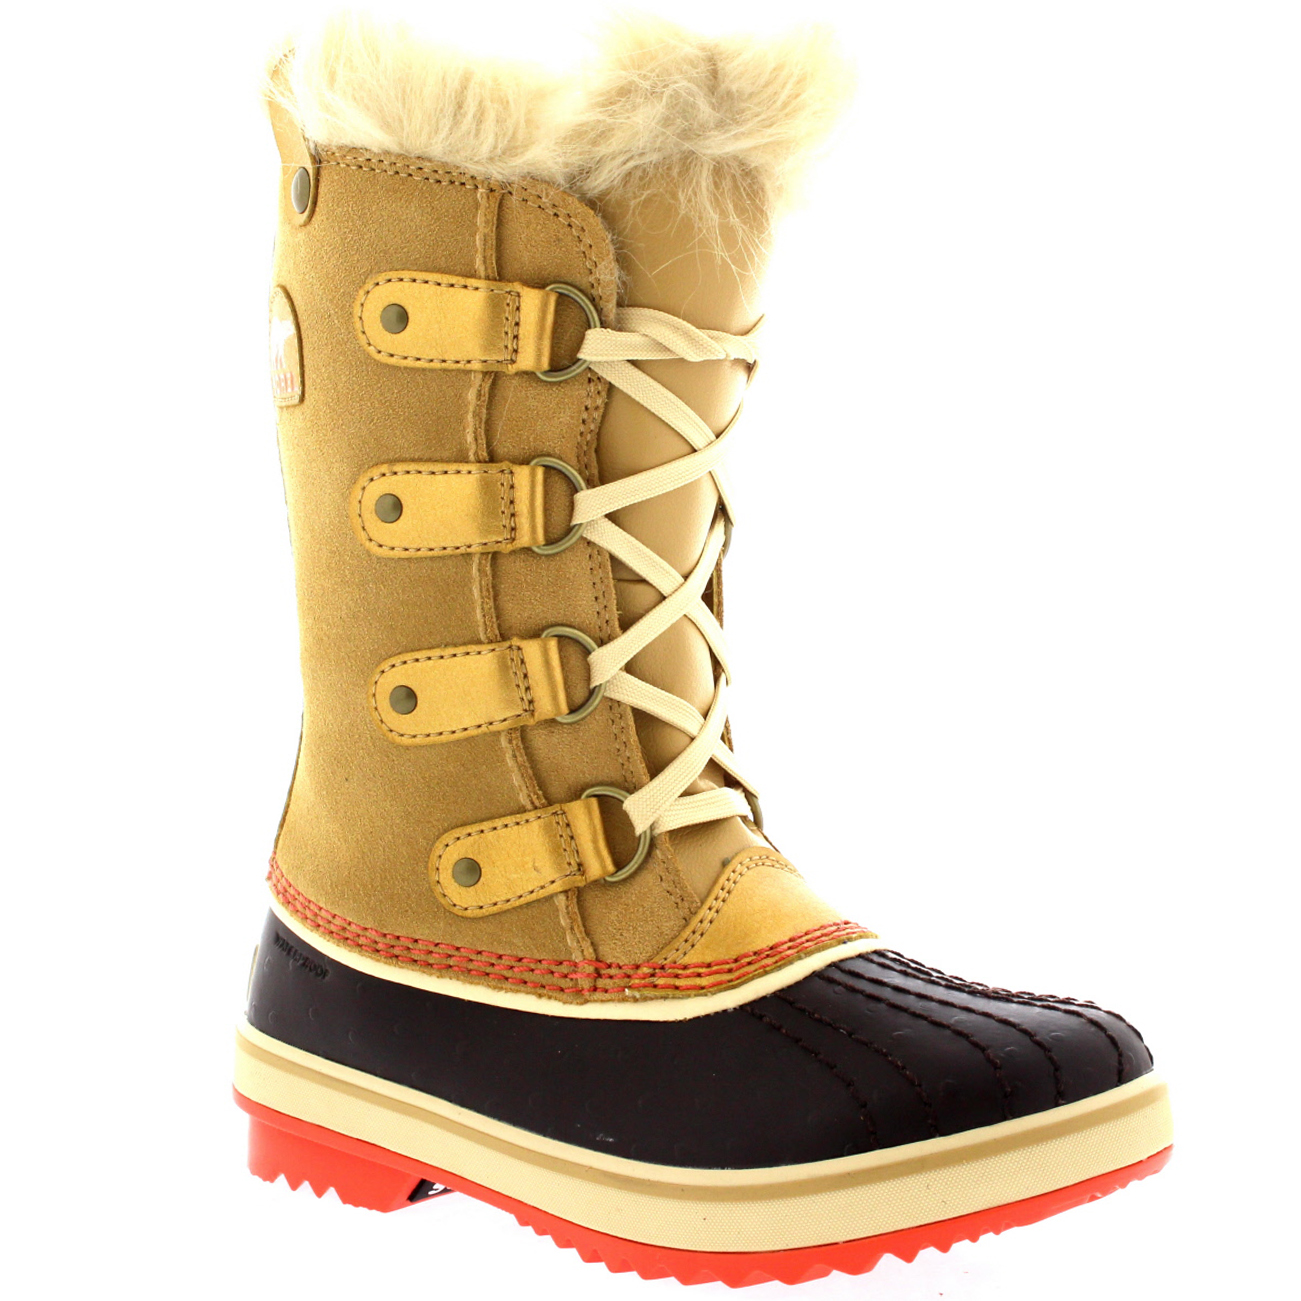 Unisex Kids Youth Sorel Tofino Fur Lined Waterproof Winter Snow ...